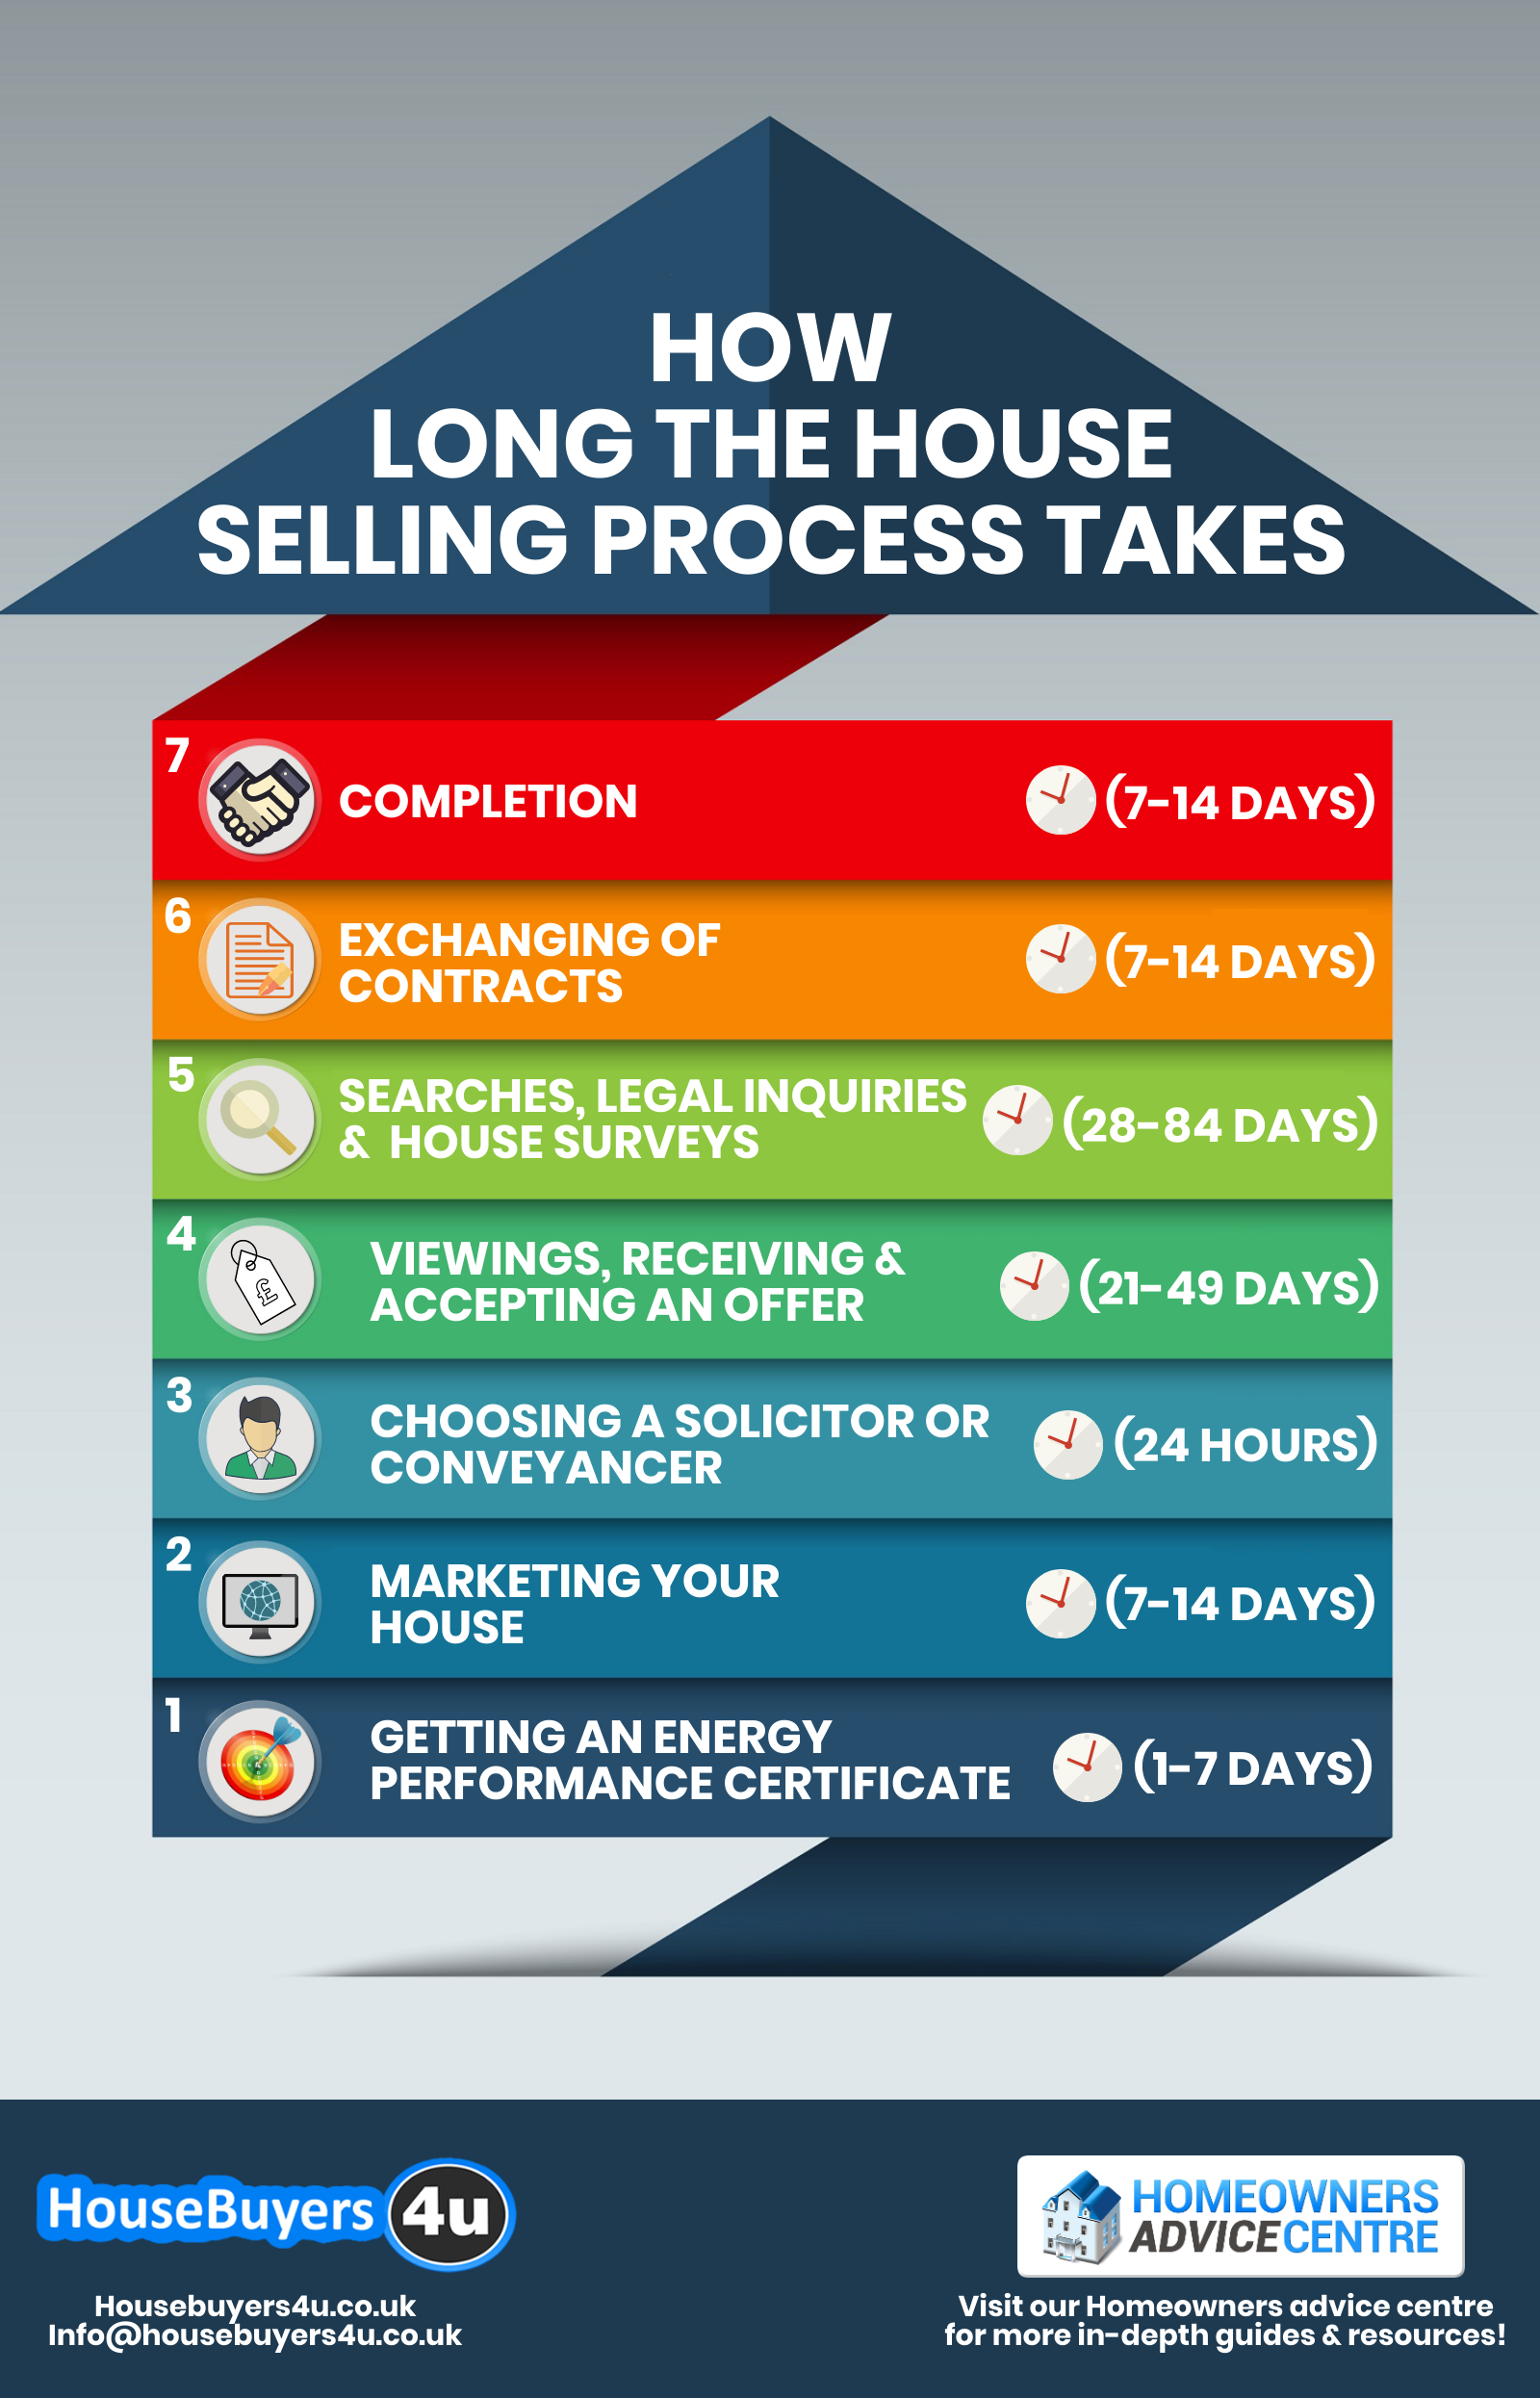 How long the house selling process takes in 7 steps